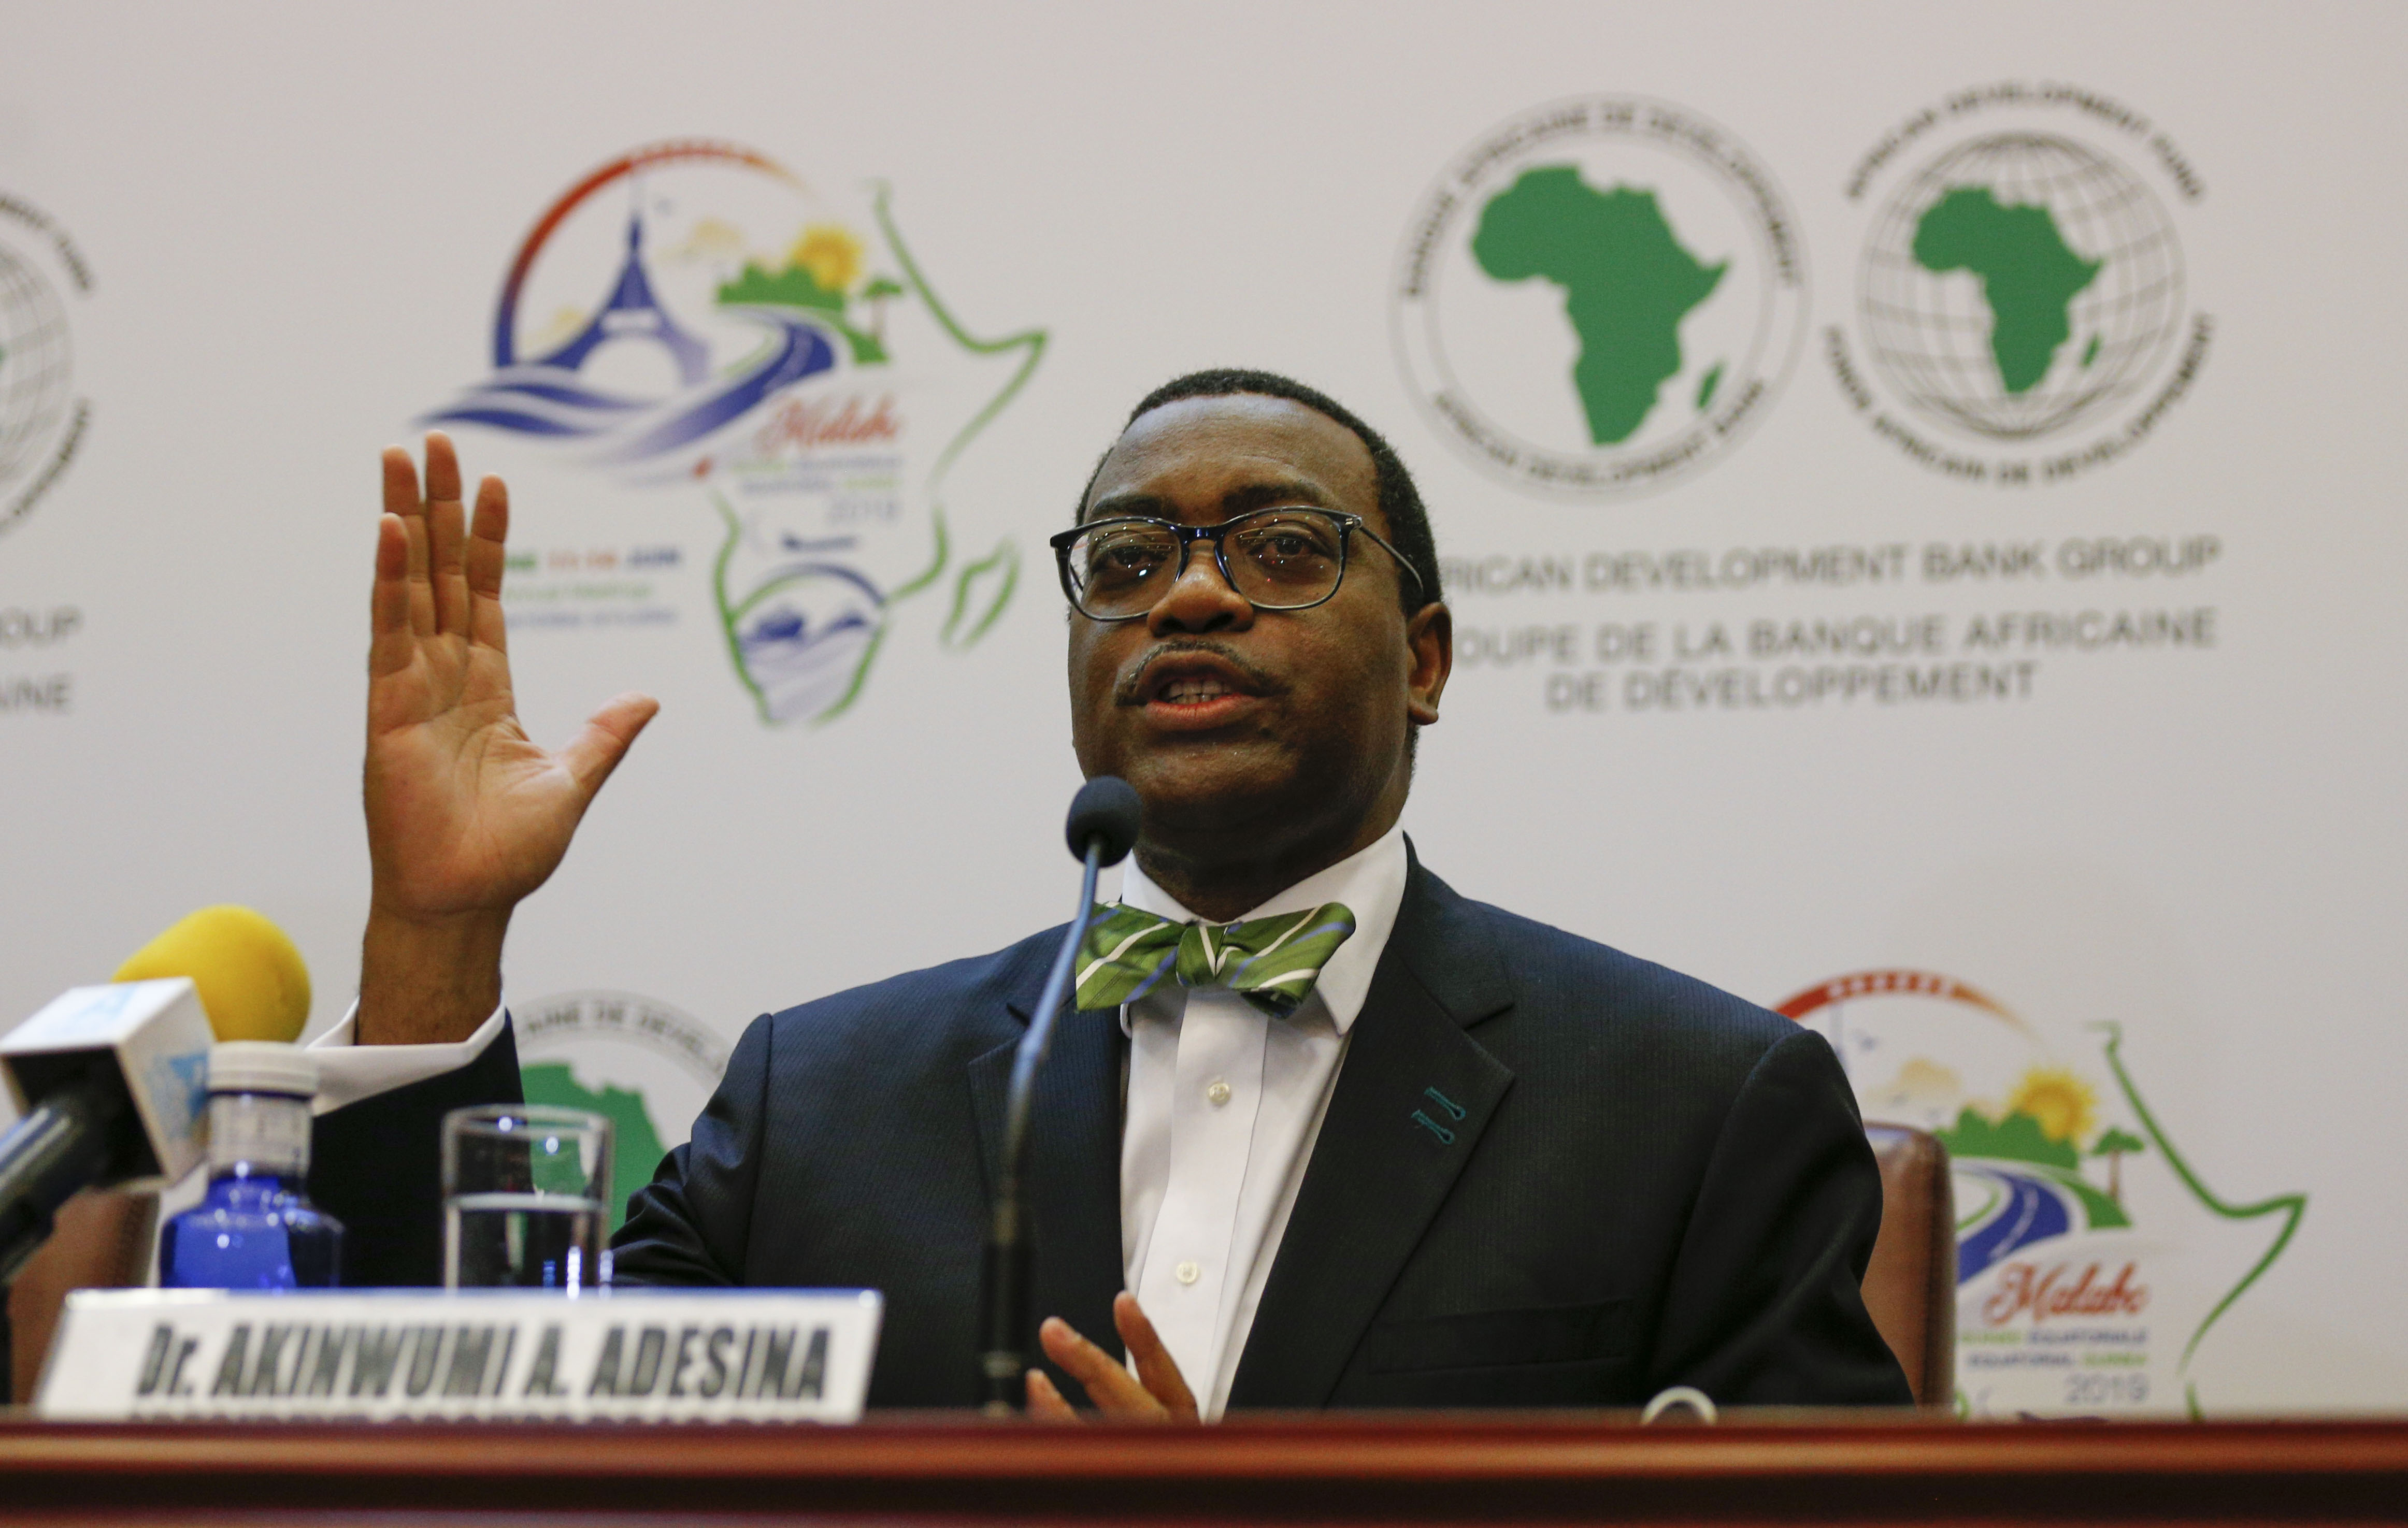 AfDB's Adesina marks integration as key to Africa's growth